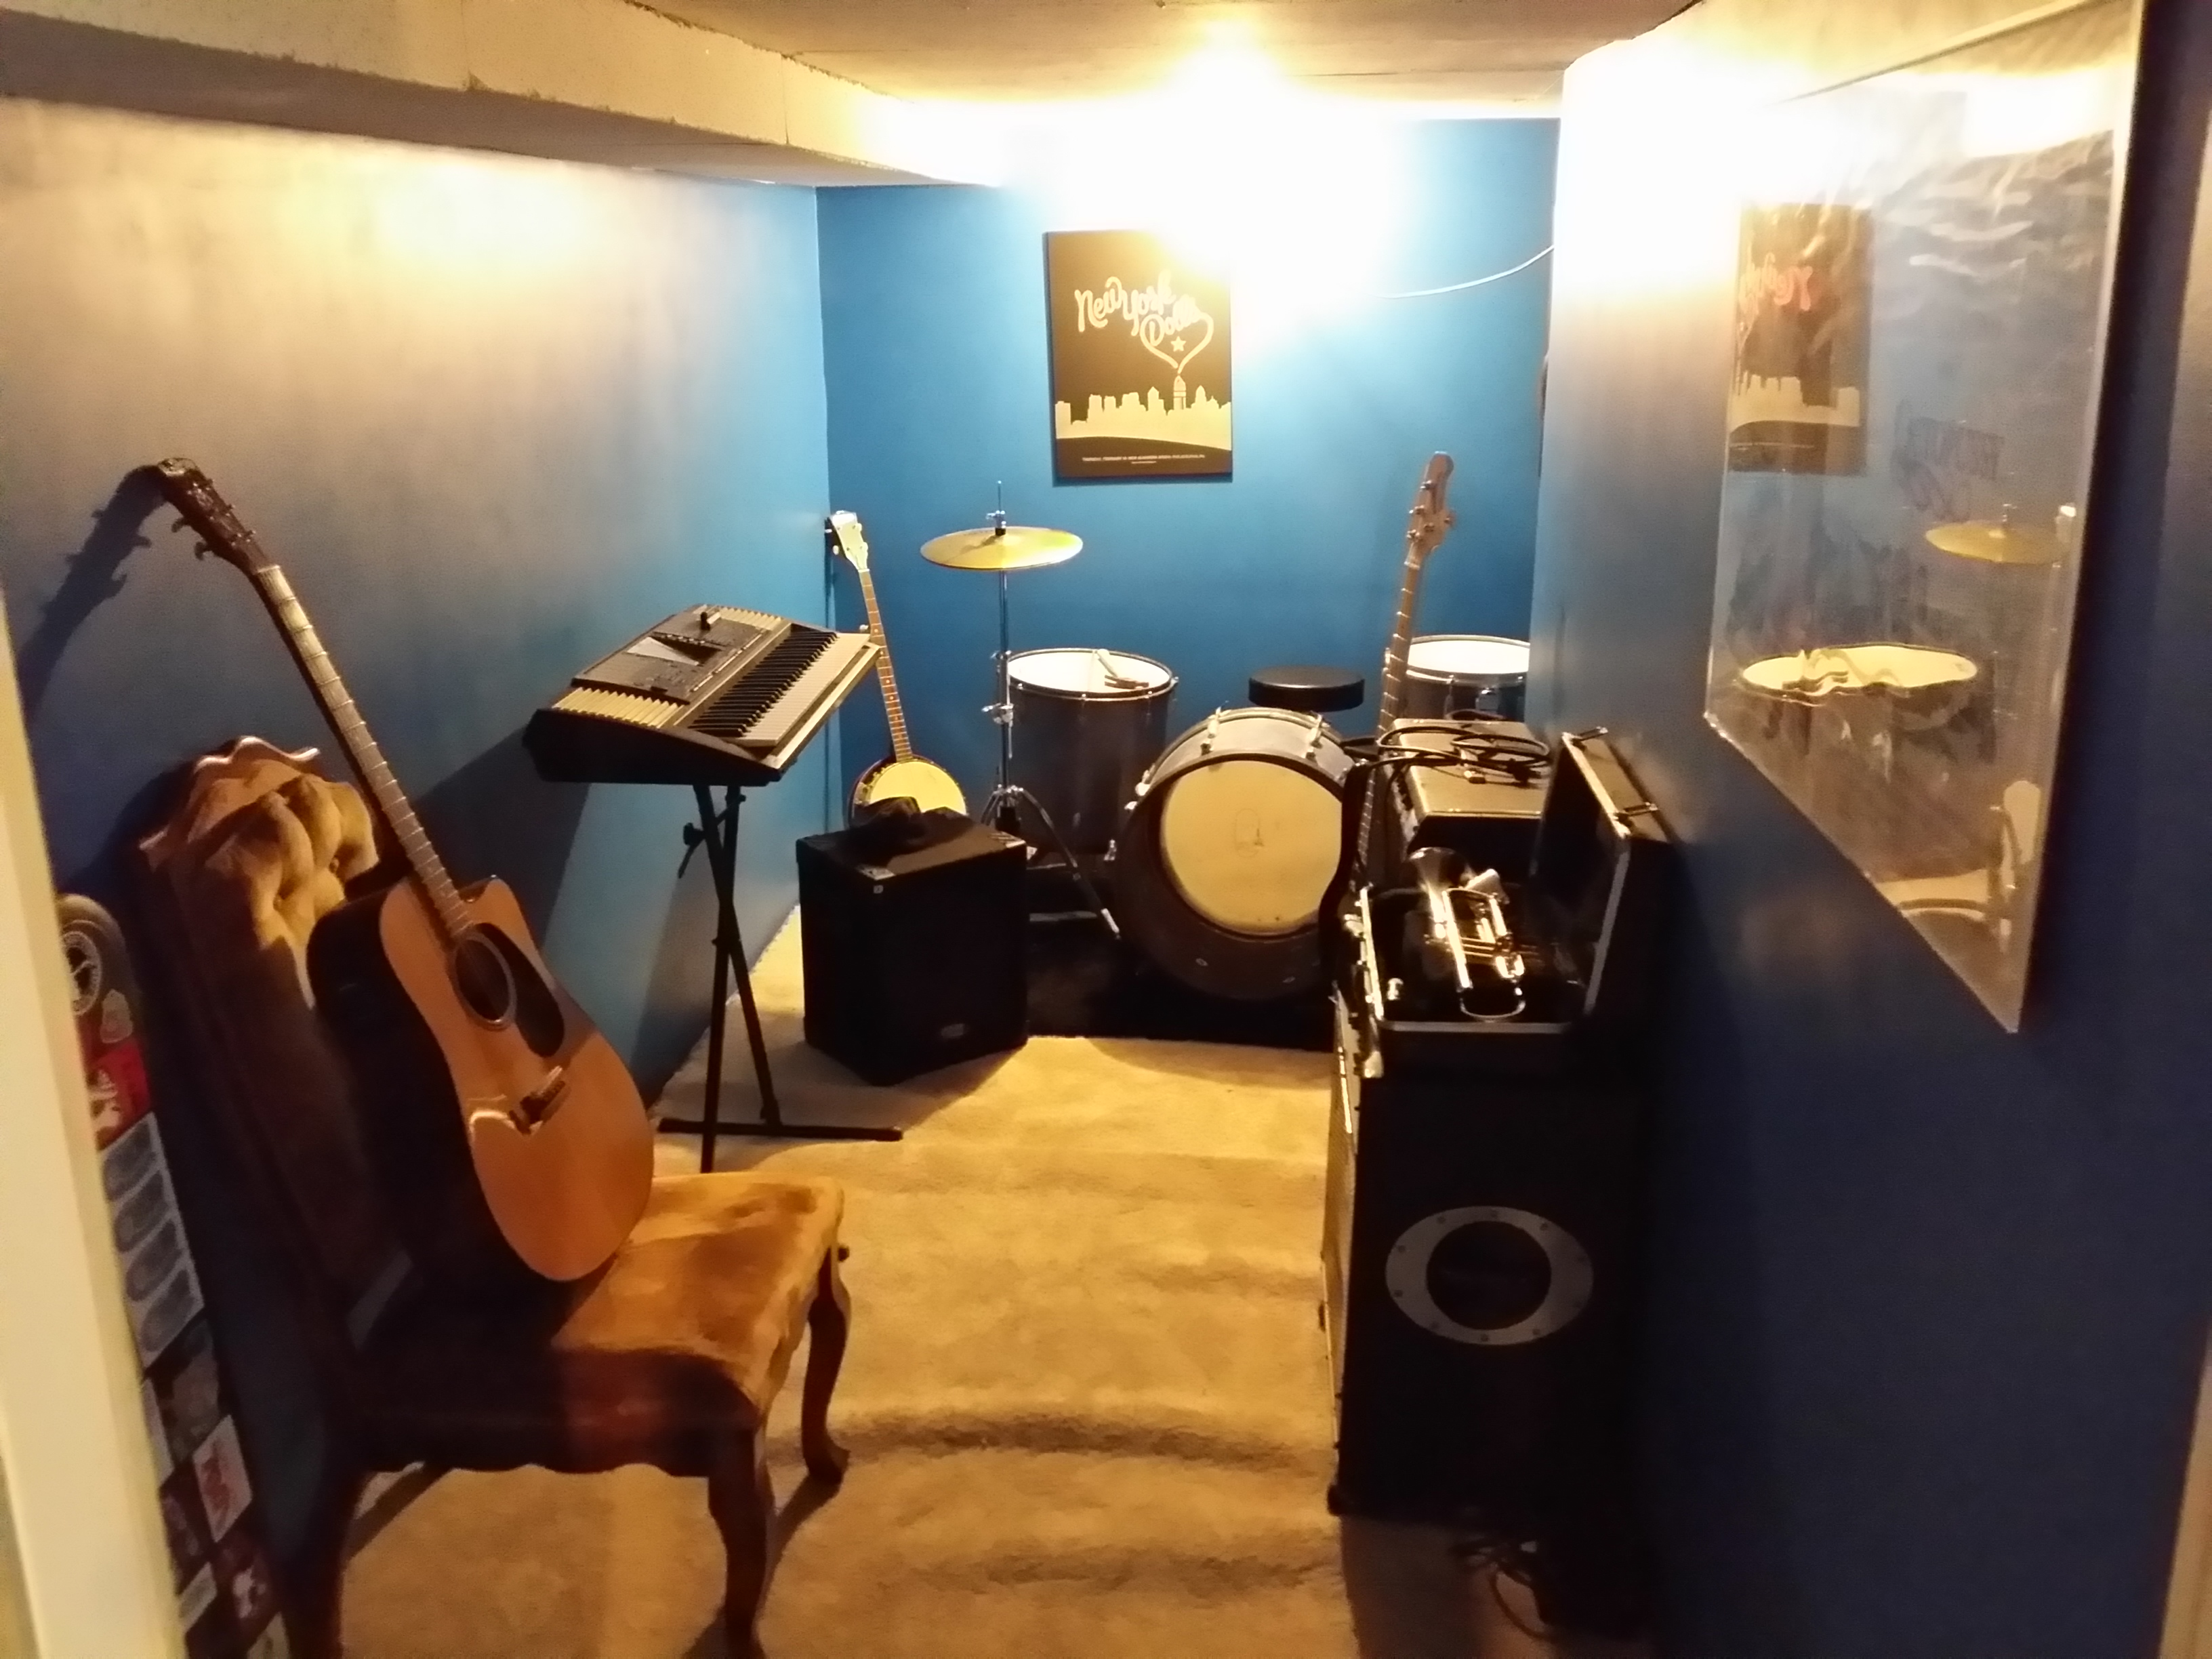 Groovy How To Build Your Own Soundproof Rehearsal Room When You Have No Largest Home Design Picture Inspirations Pitcheantrous